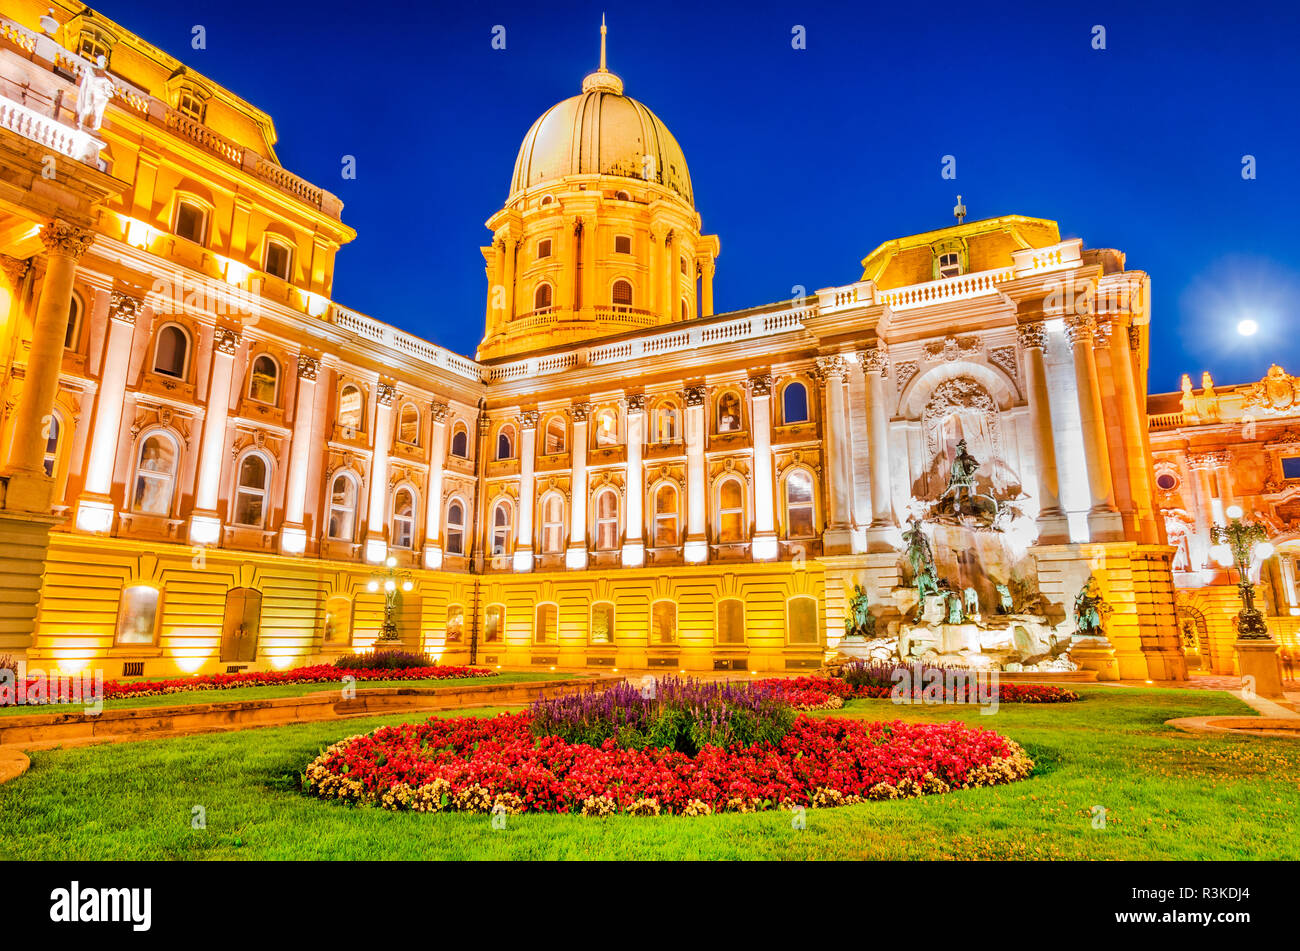 Budapest, Hungary. Buda Castle built on Castle Hill by Magyar kings. - Stock Image